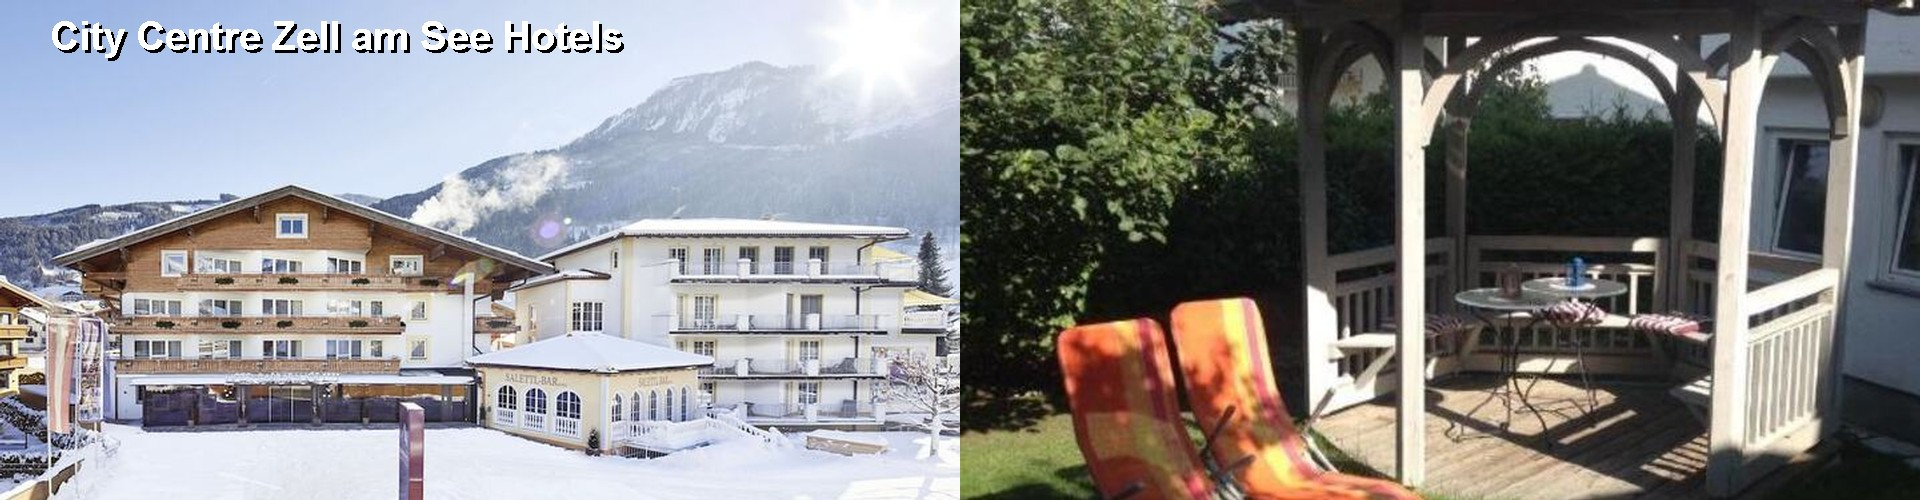 5 Best Hotels near City Centre Zell am See